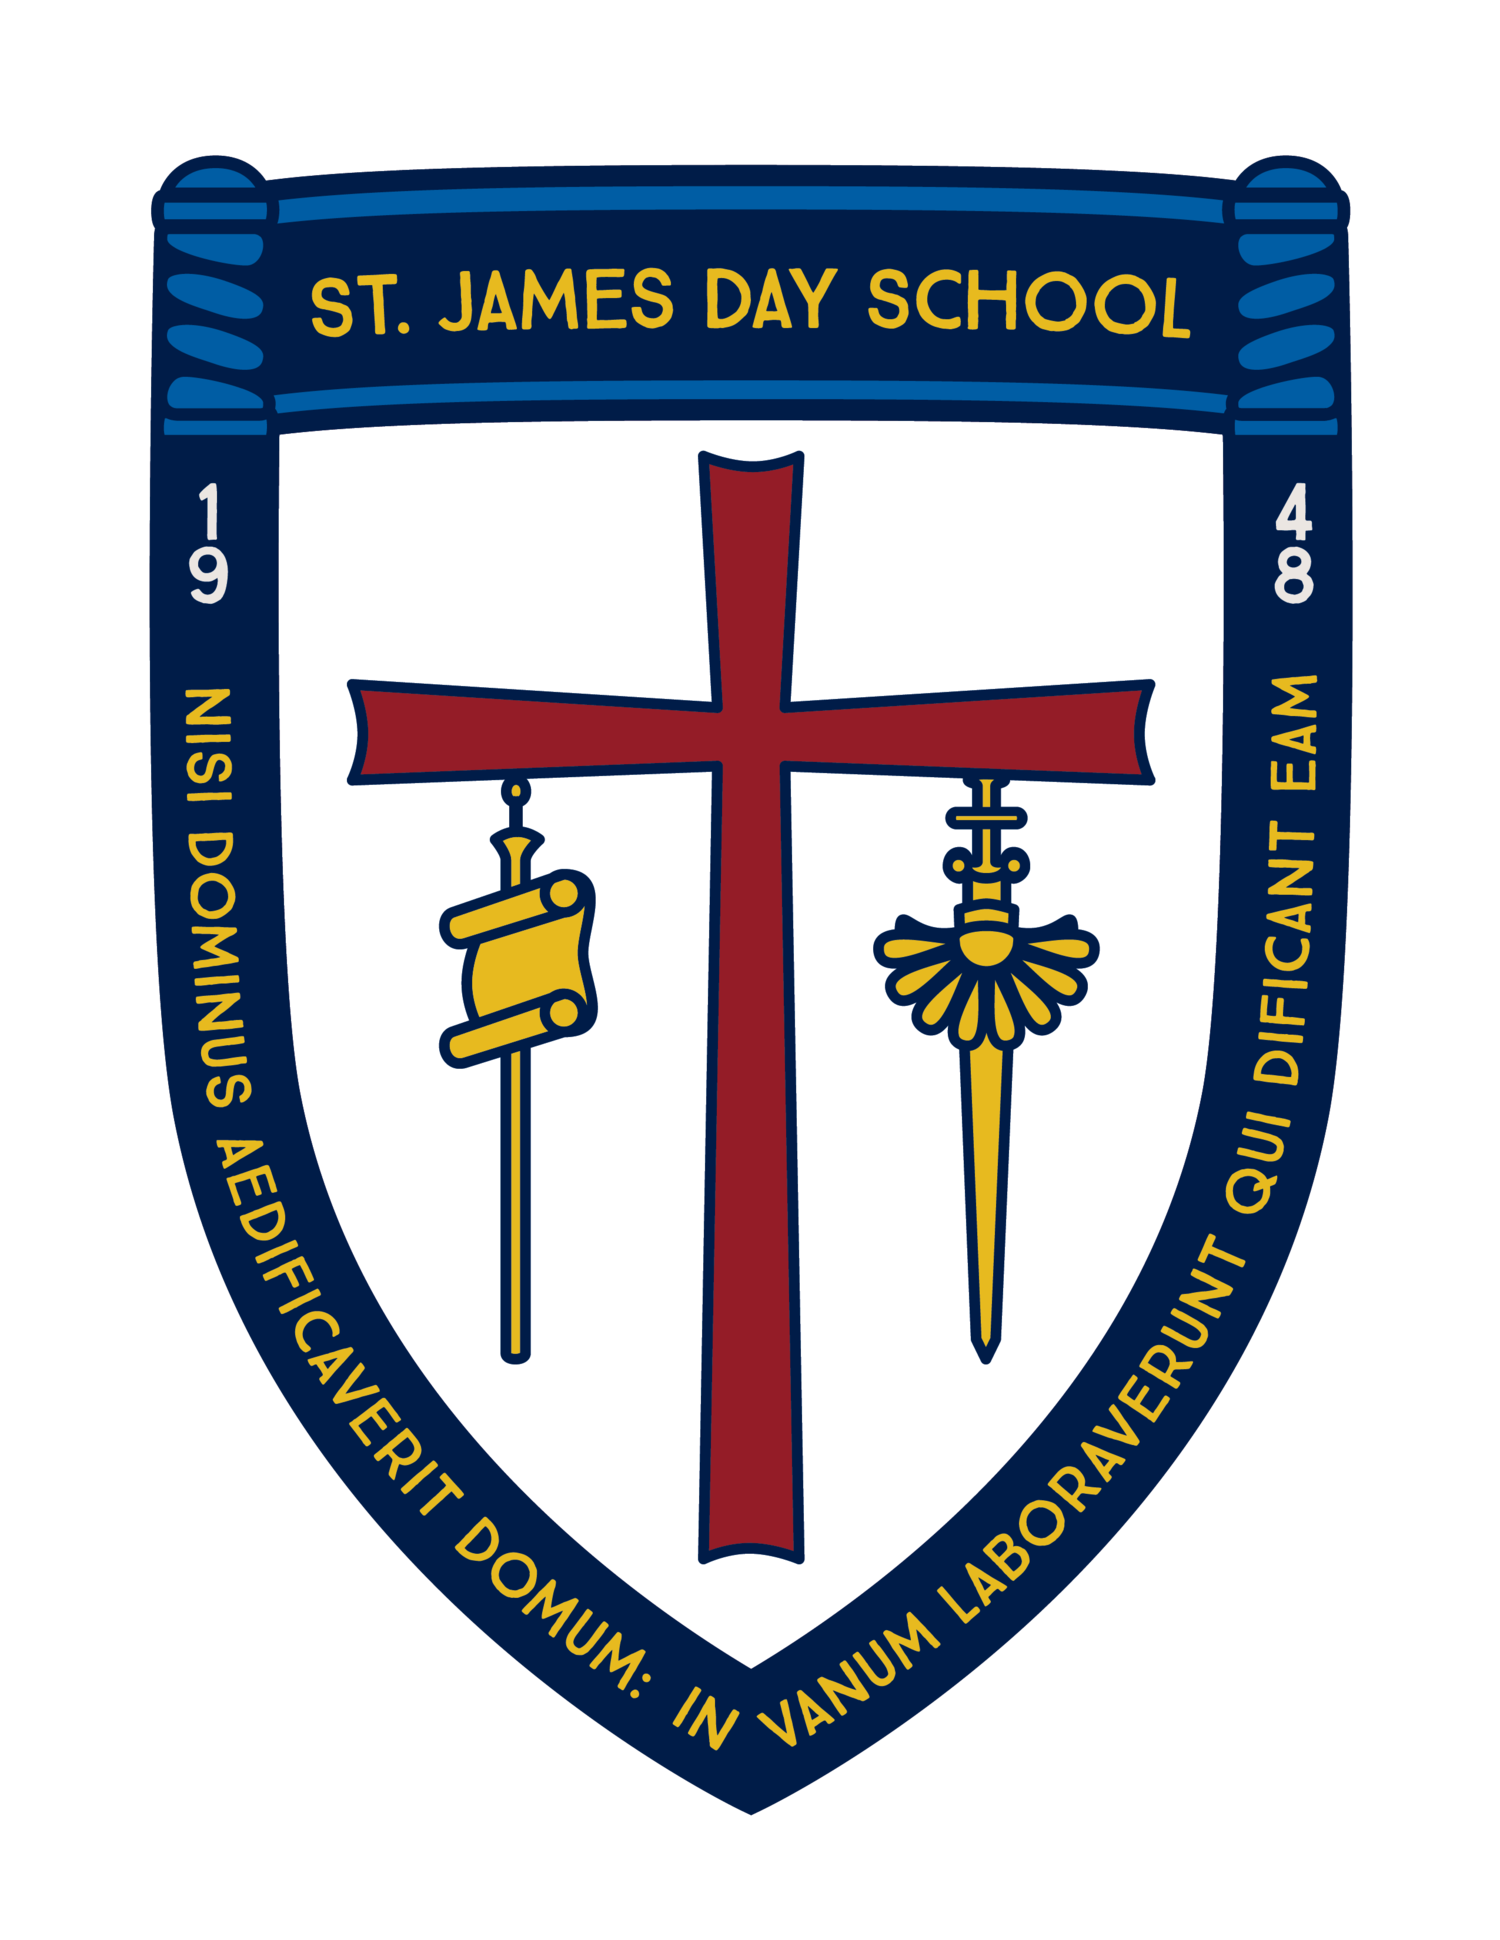 St. James Day School